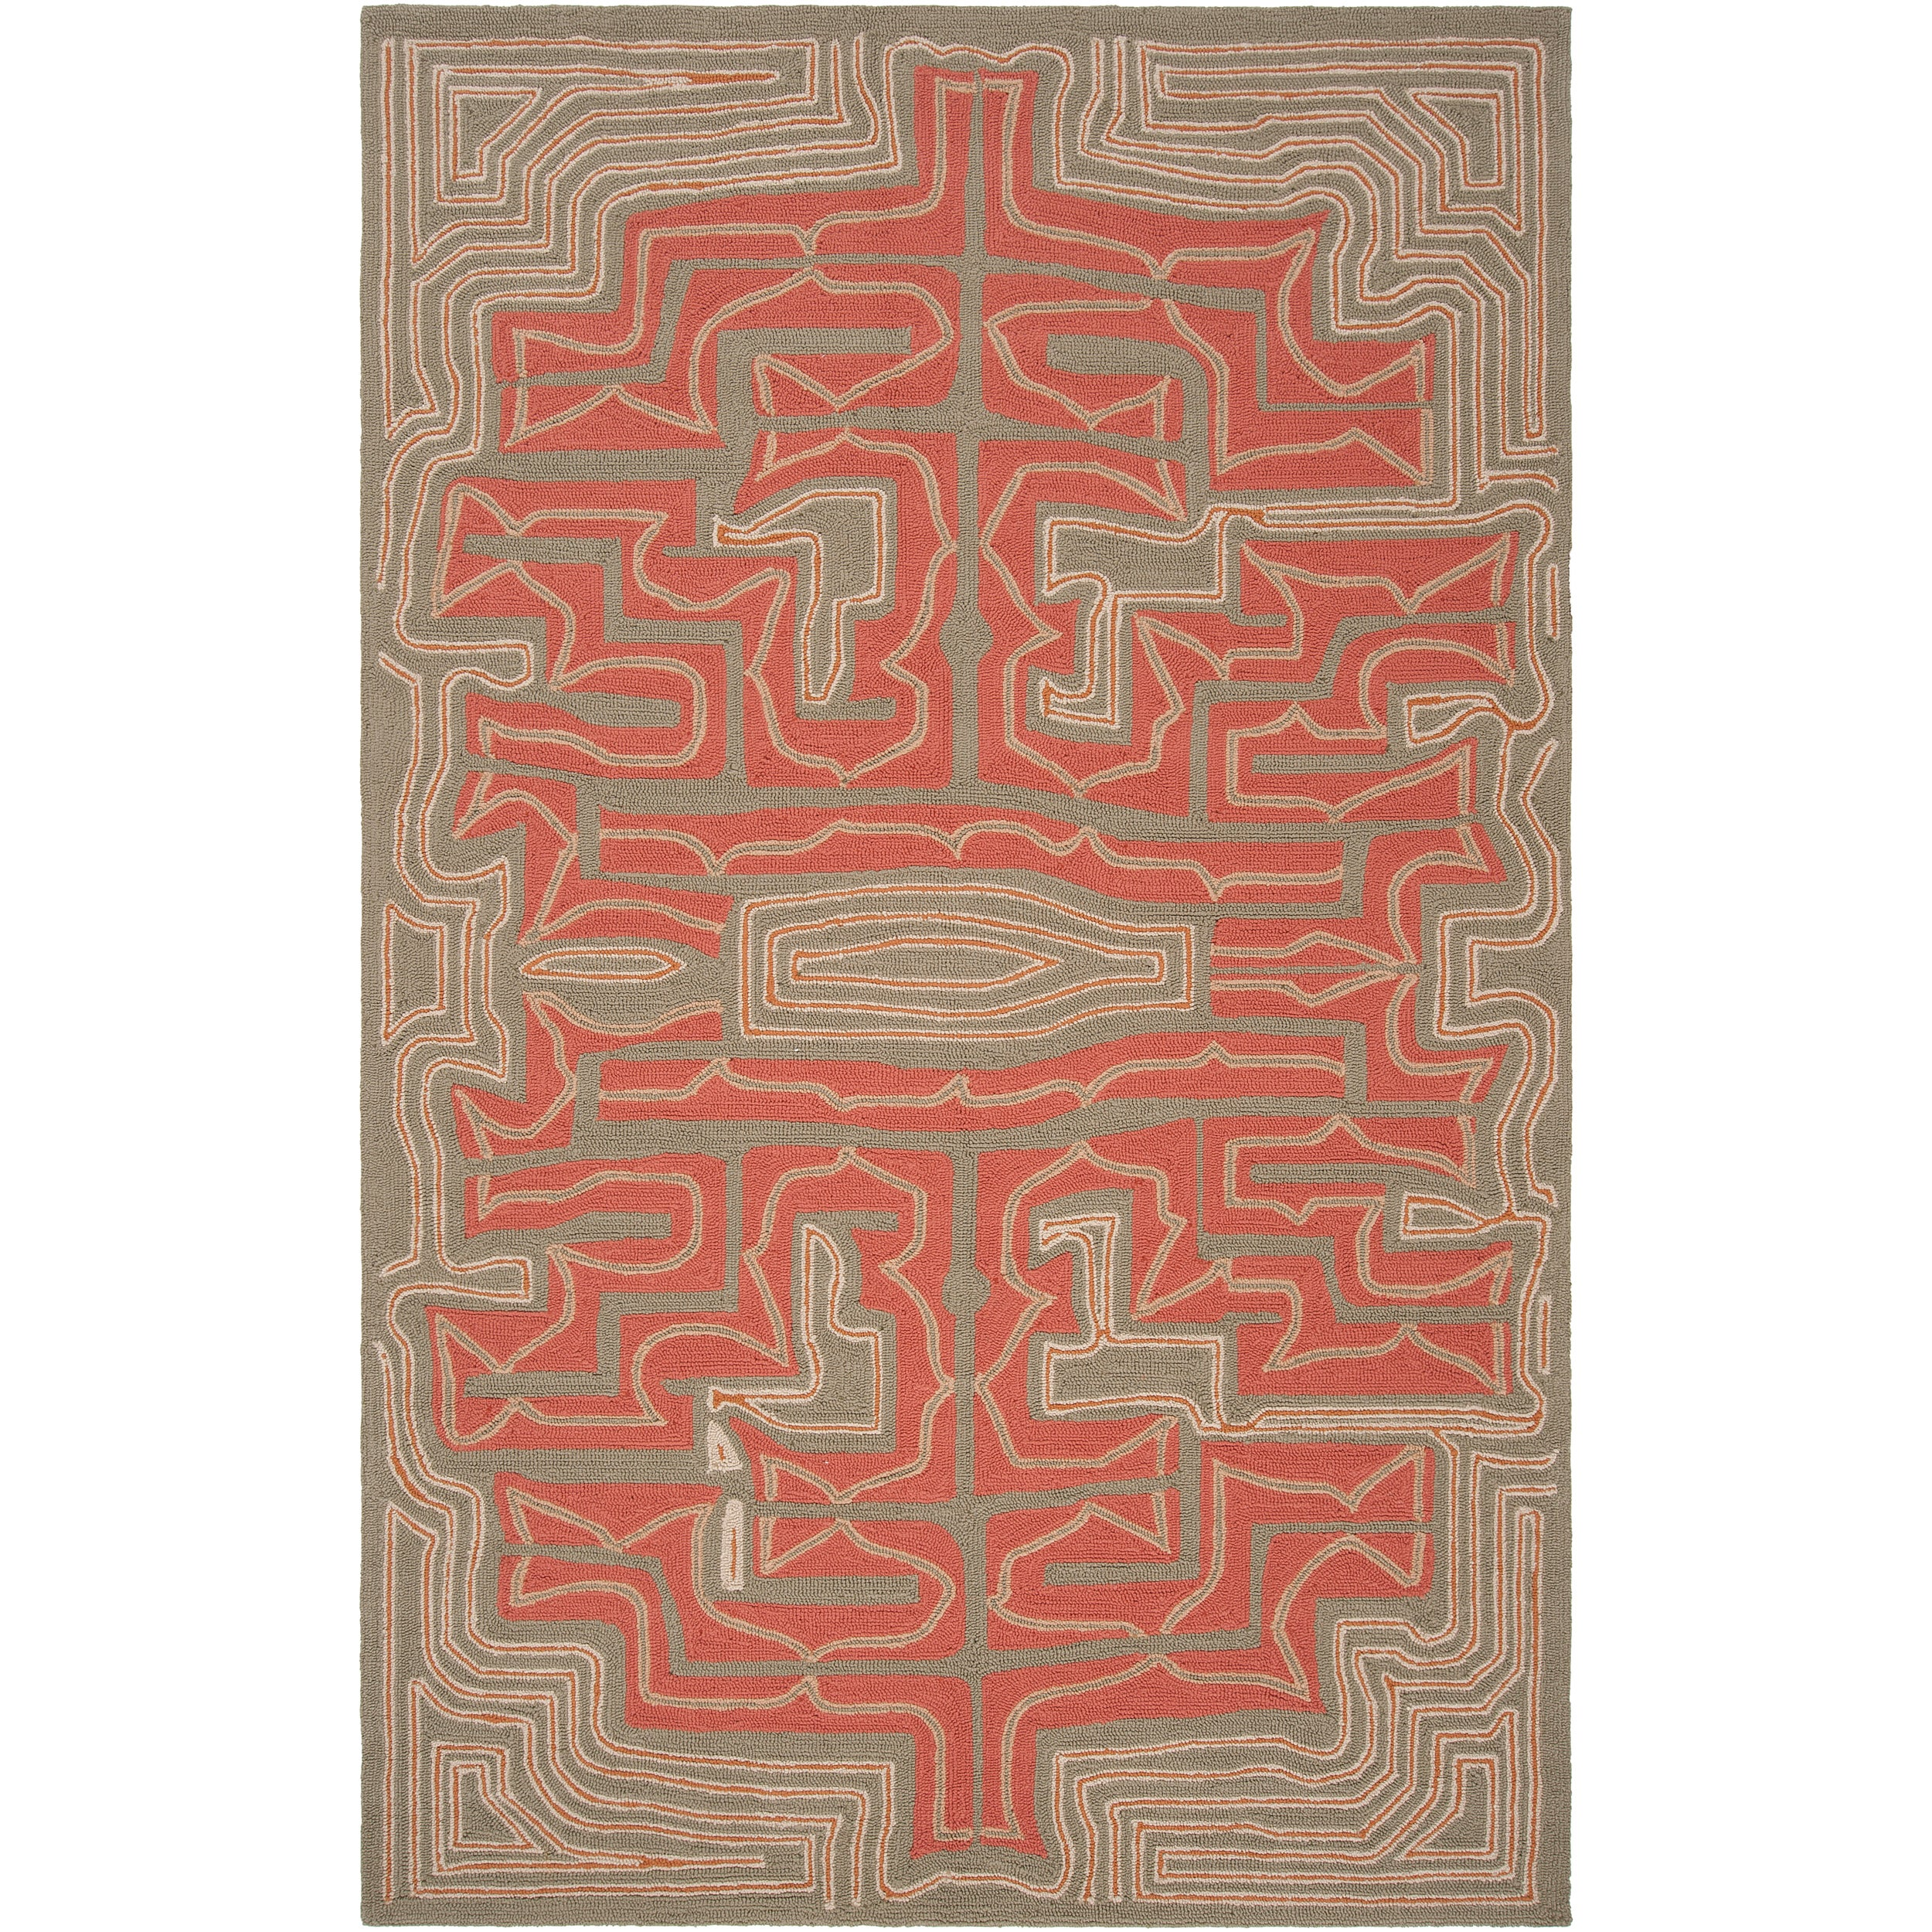 Hand-hooked 'Yarra' Grey Indoor/Outdoor Geometric Rug (9' x 12')